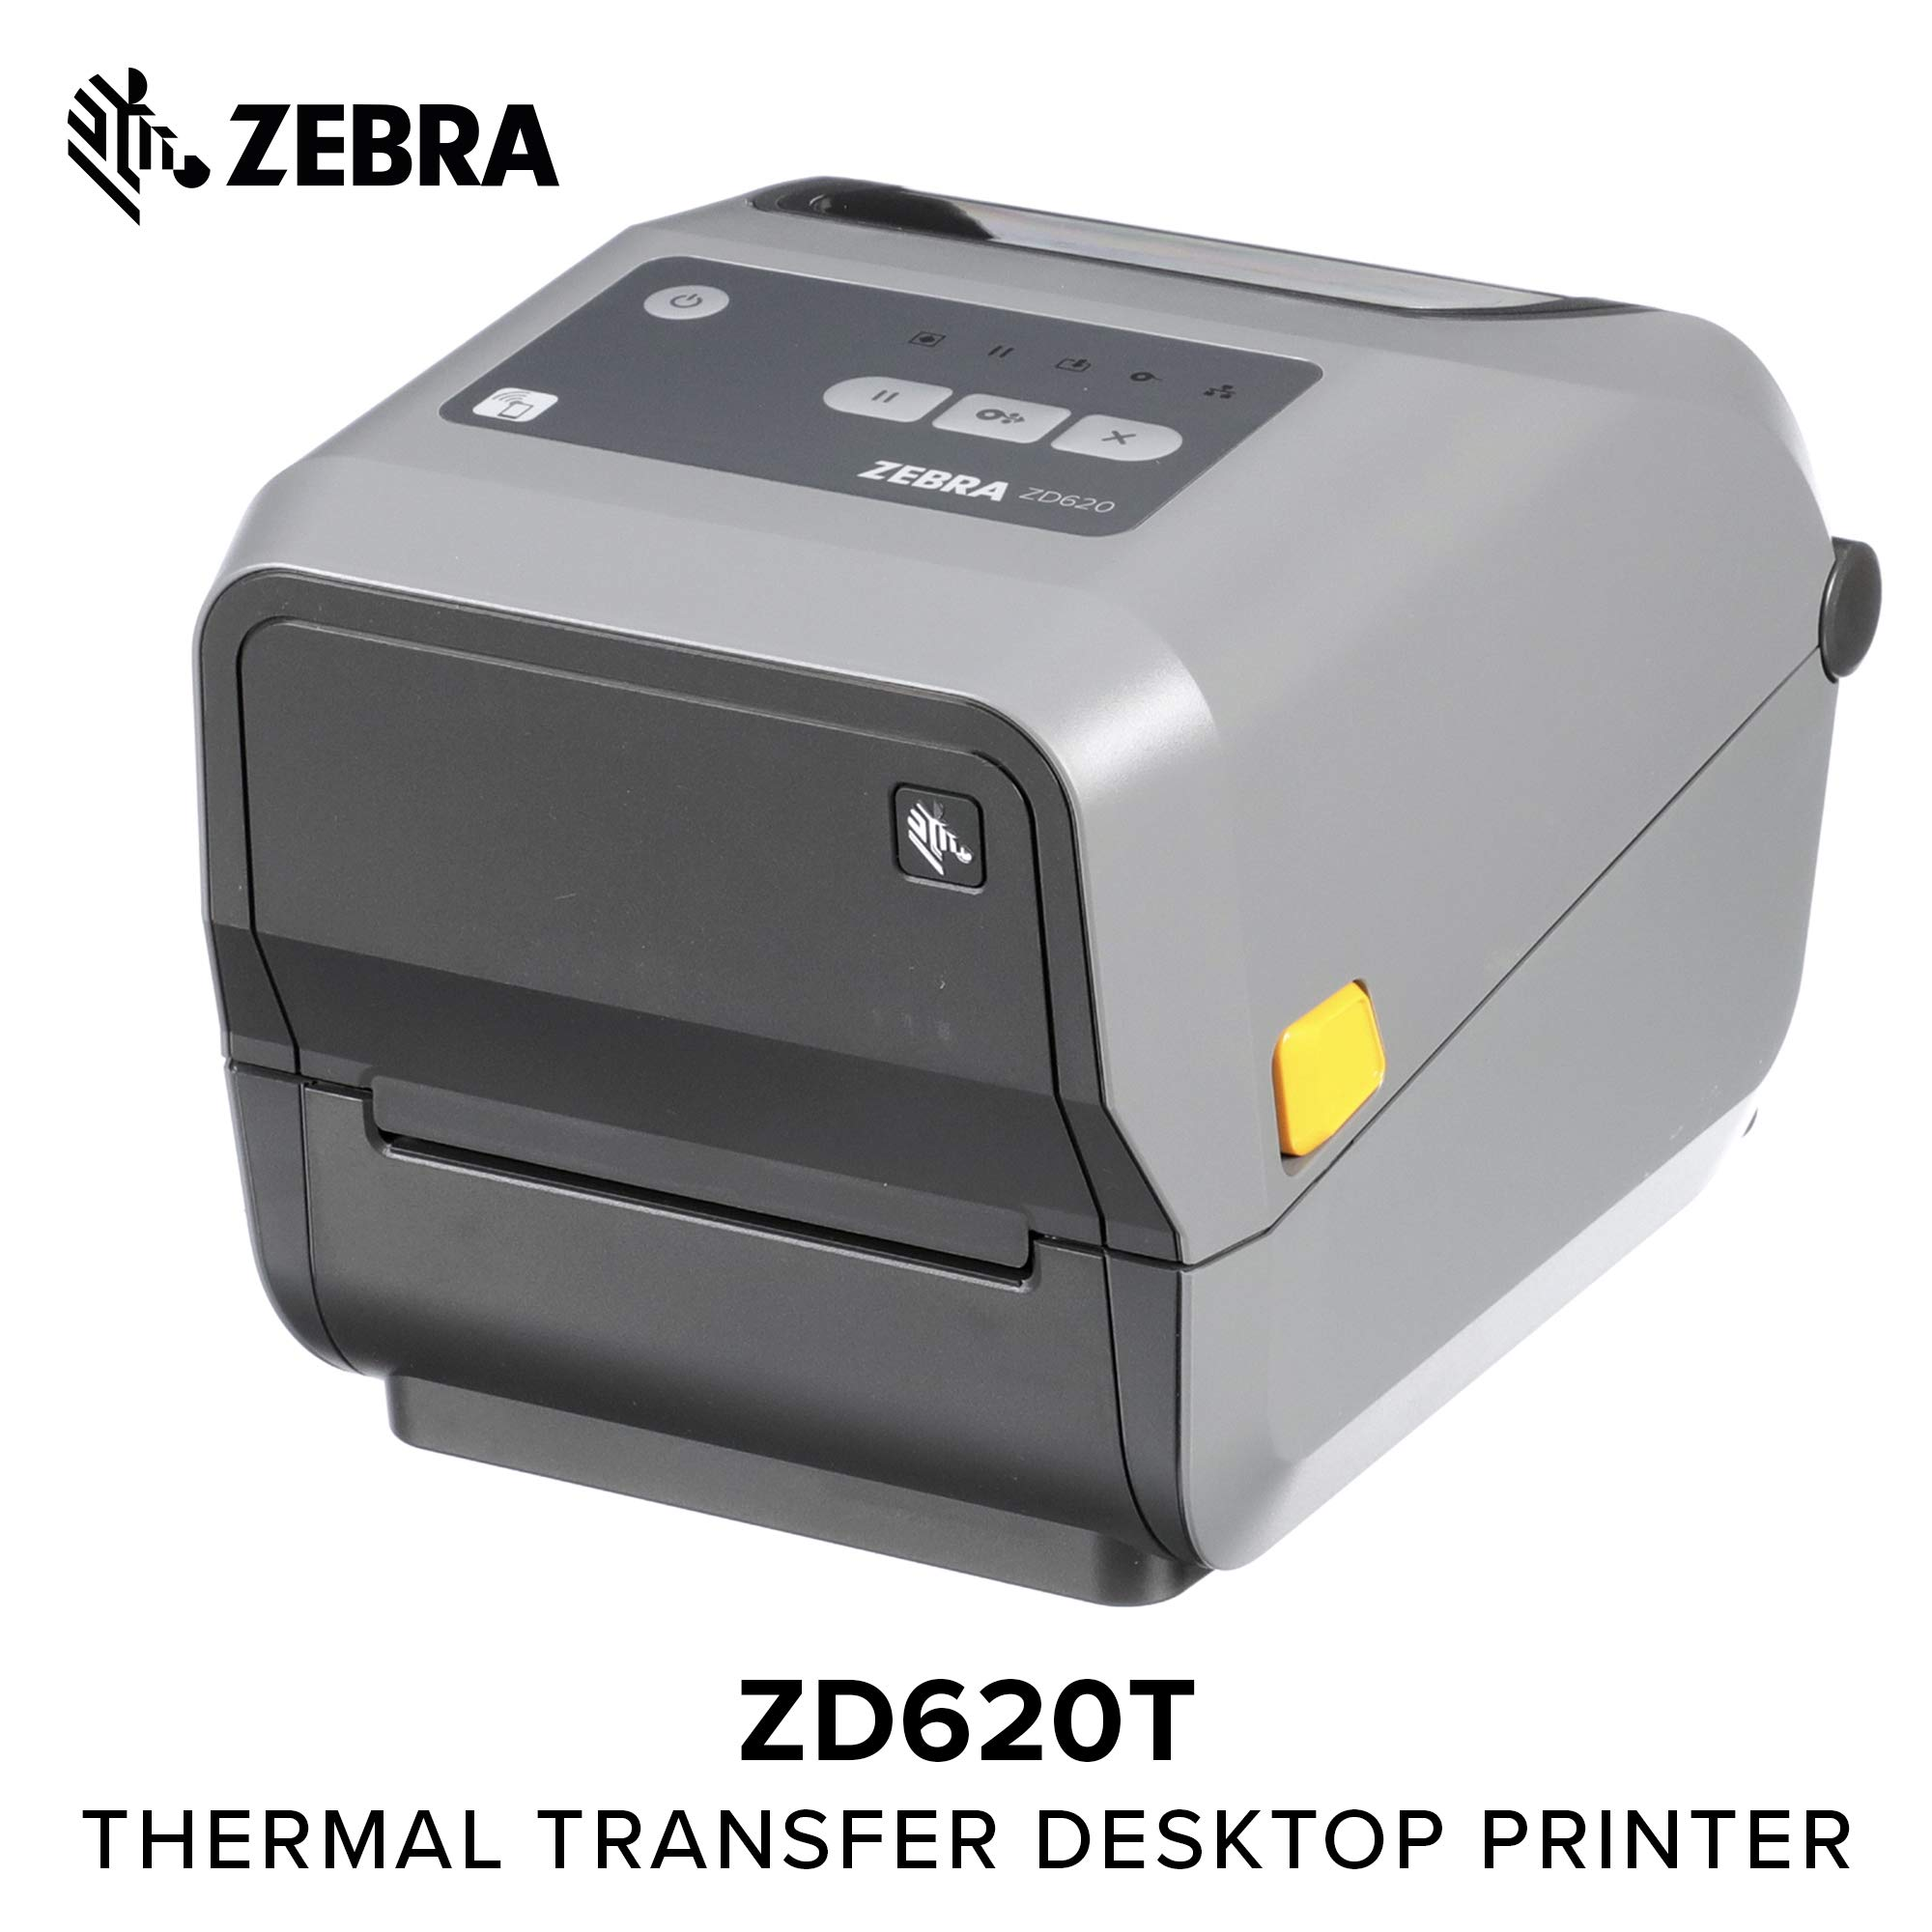 Zebra - ZD620t Thermal Transfer Desktop Printer for Labels and Barcodes - Print Width 4 in - 300 dpi - Interface: Ethernet, Serial, USB - ZD62043-T01F00EZ